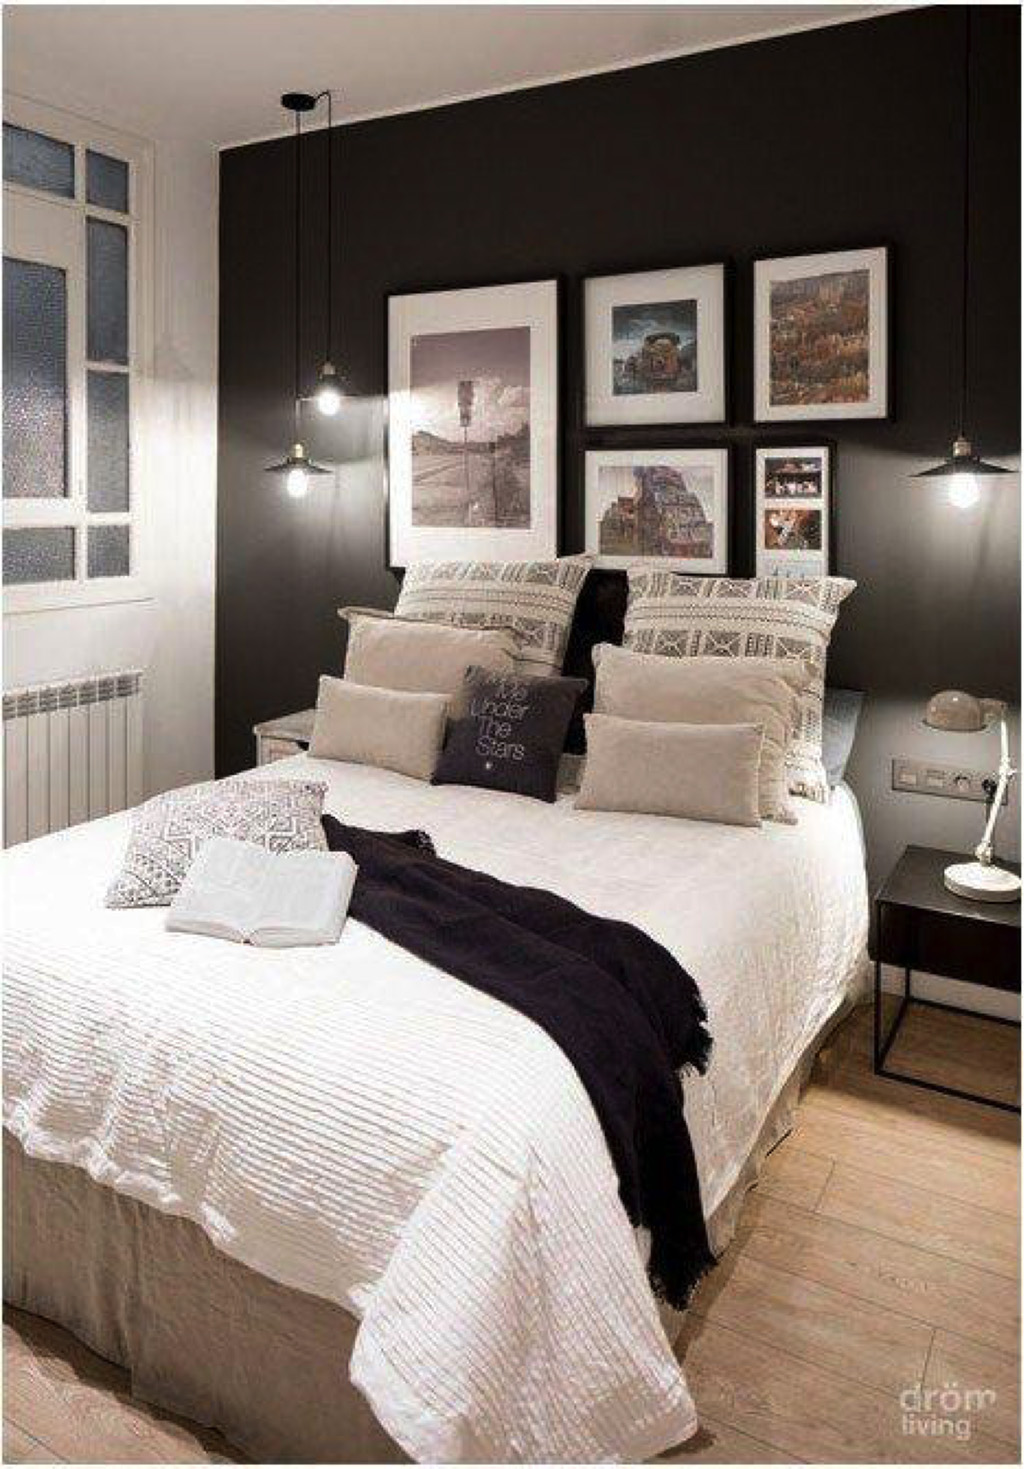 5 Ideas Para Decorar La Pared Del Cabecero De Tu Cama Neutradecor - Decorar-pared-cabecero